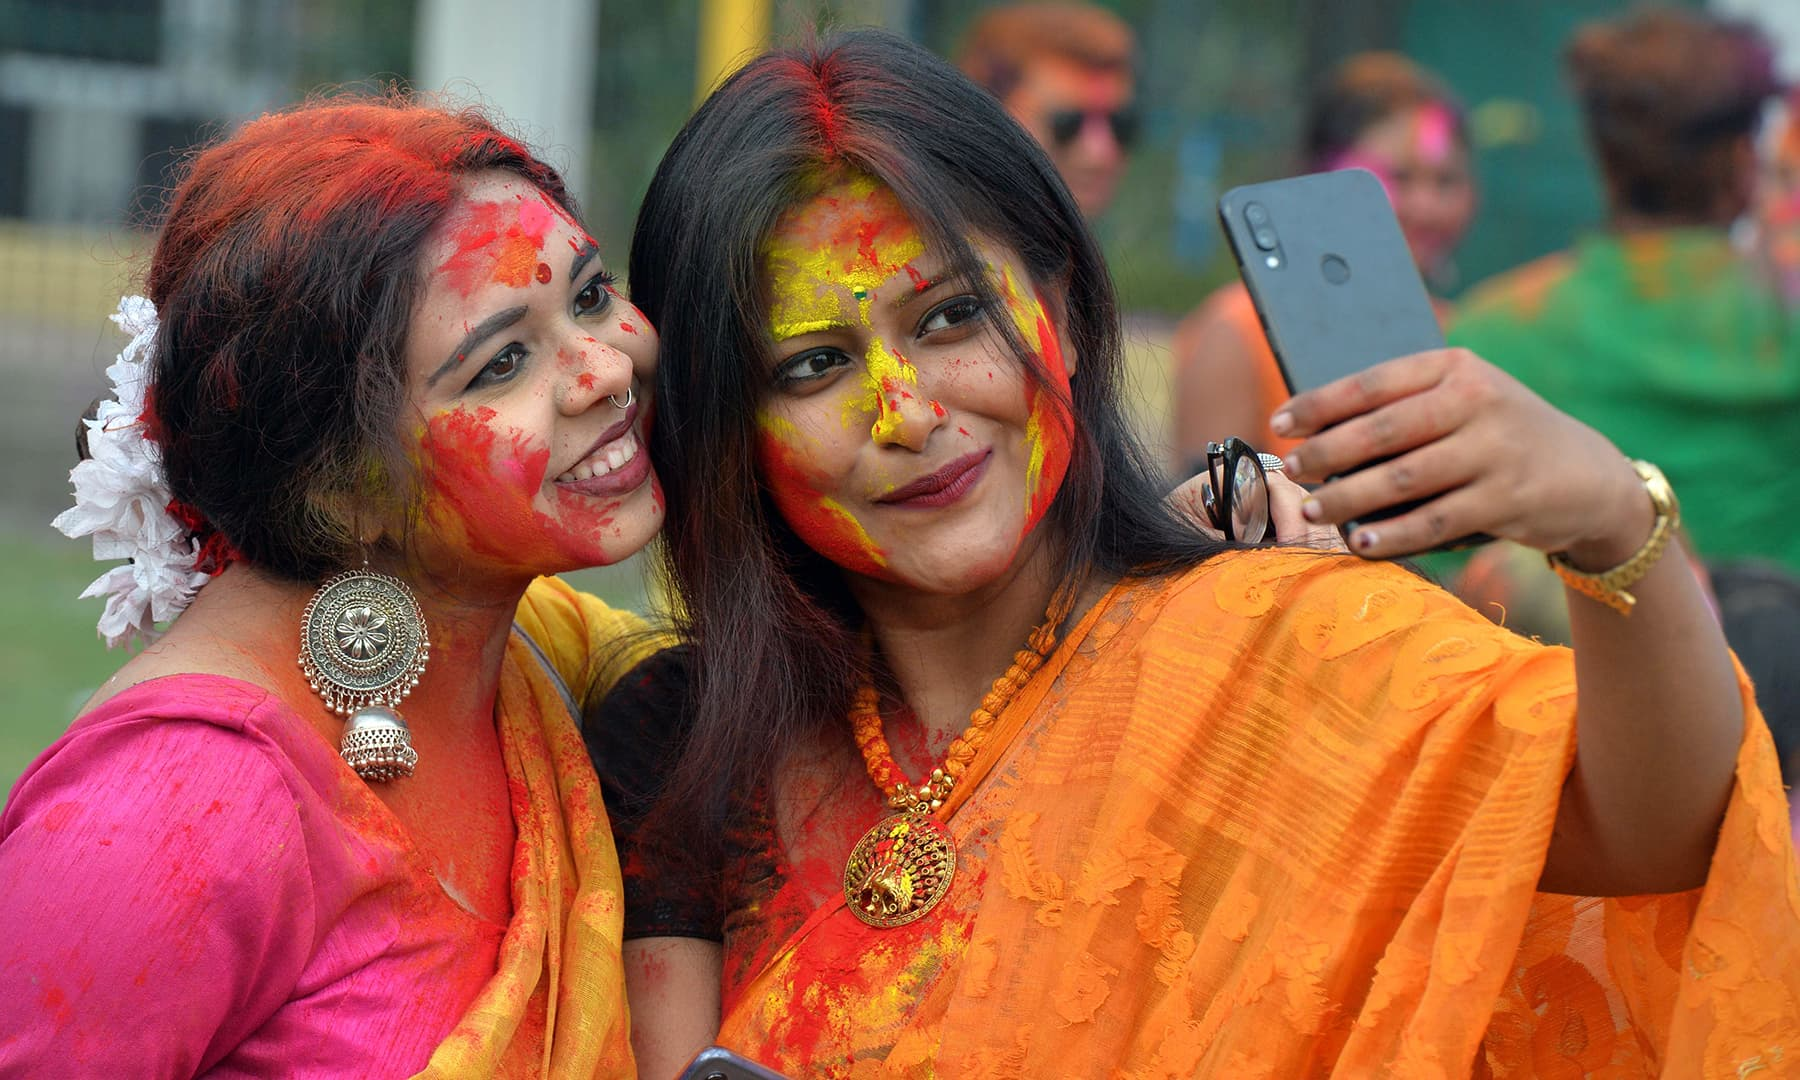 Revellers with their faces smeared with colour powder take a selfie as they celebrate Holi in Siliguri on March 9. — AFP